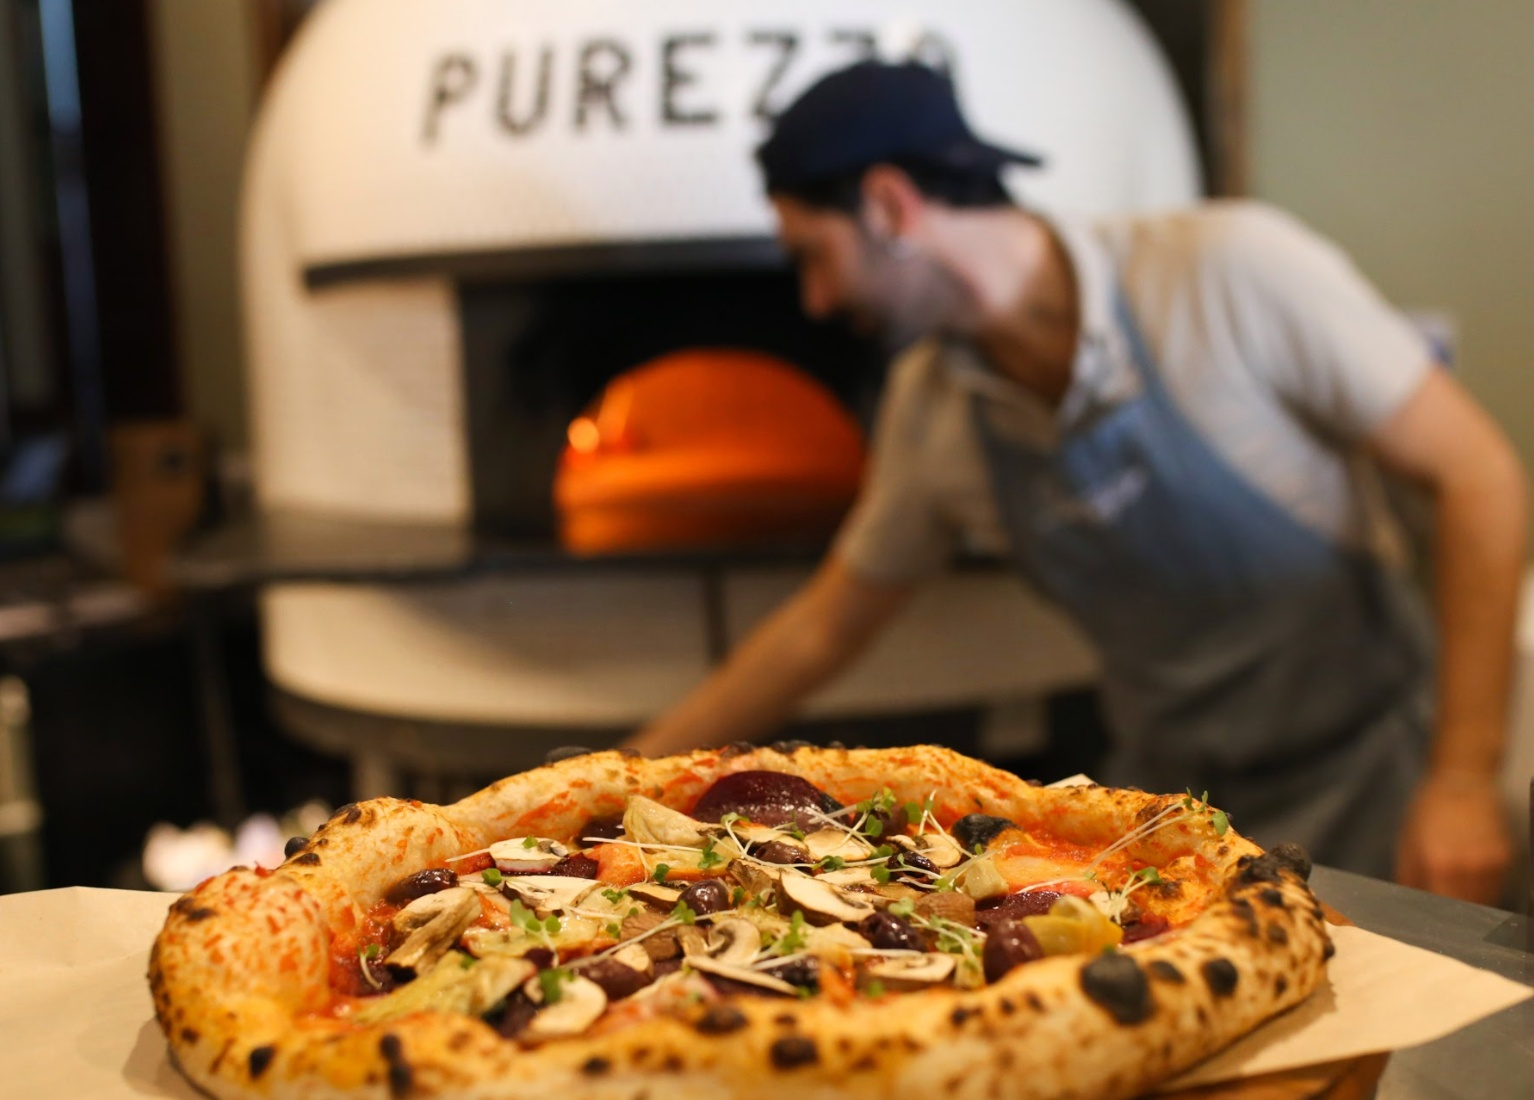 Making pizza at vegan pizzeria Purezza